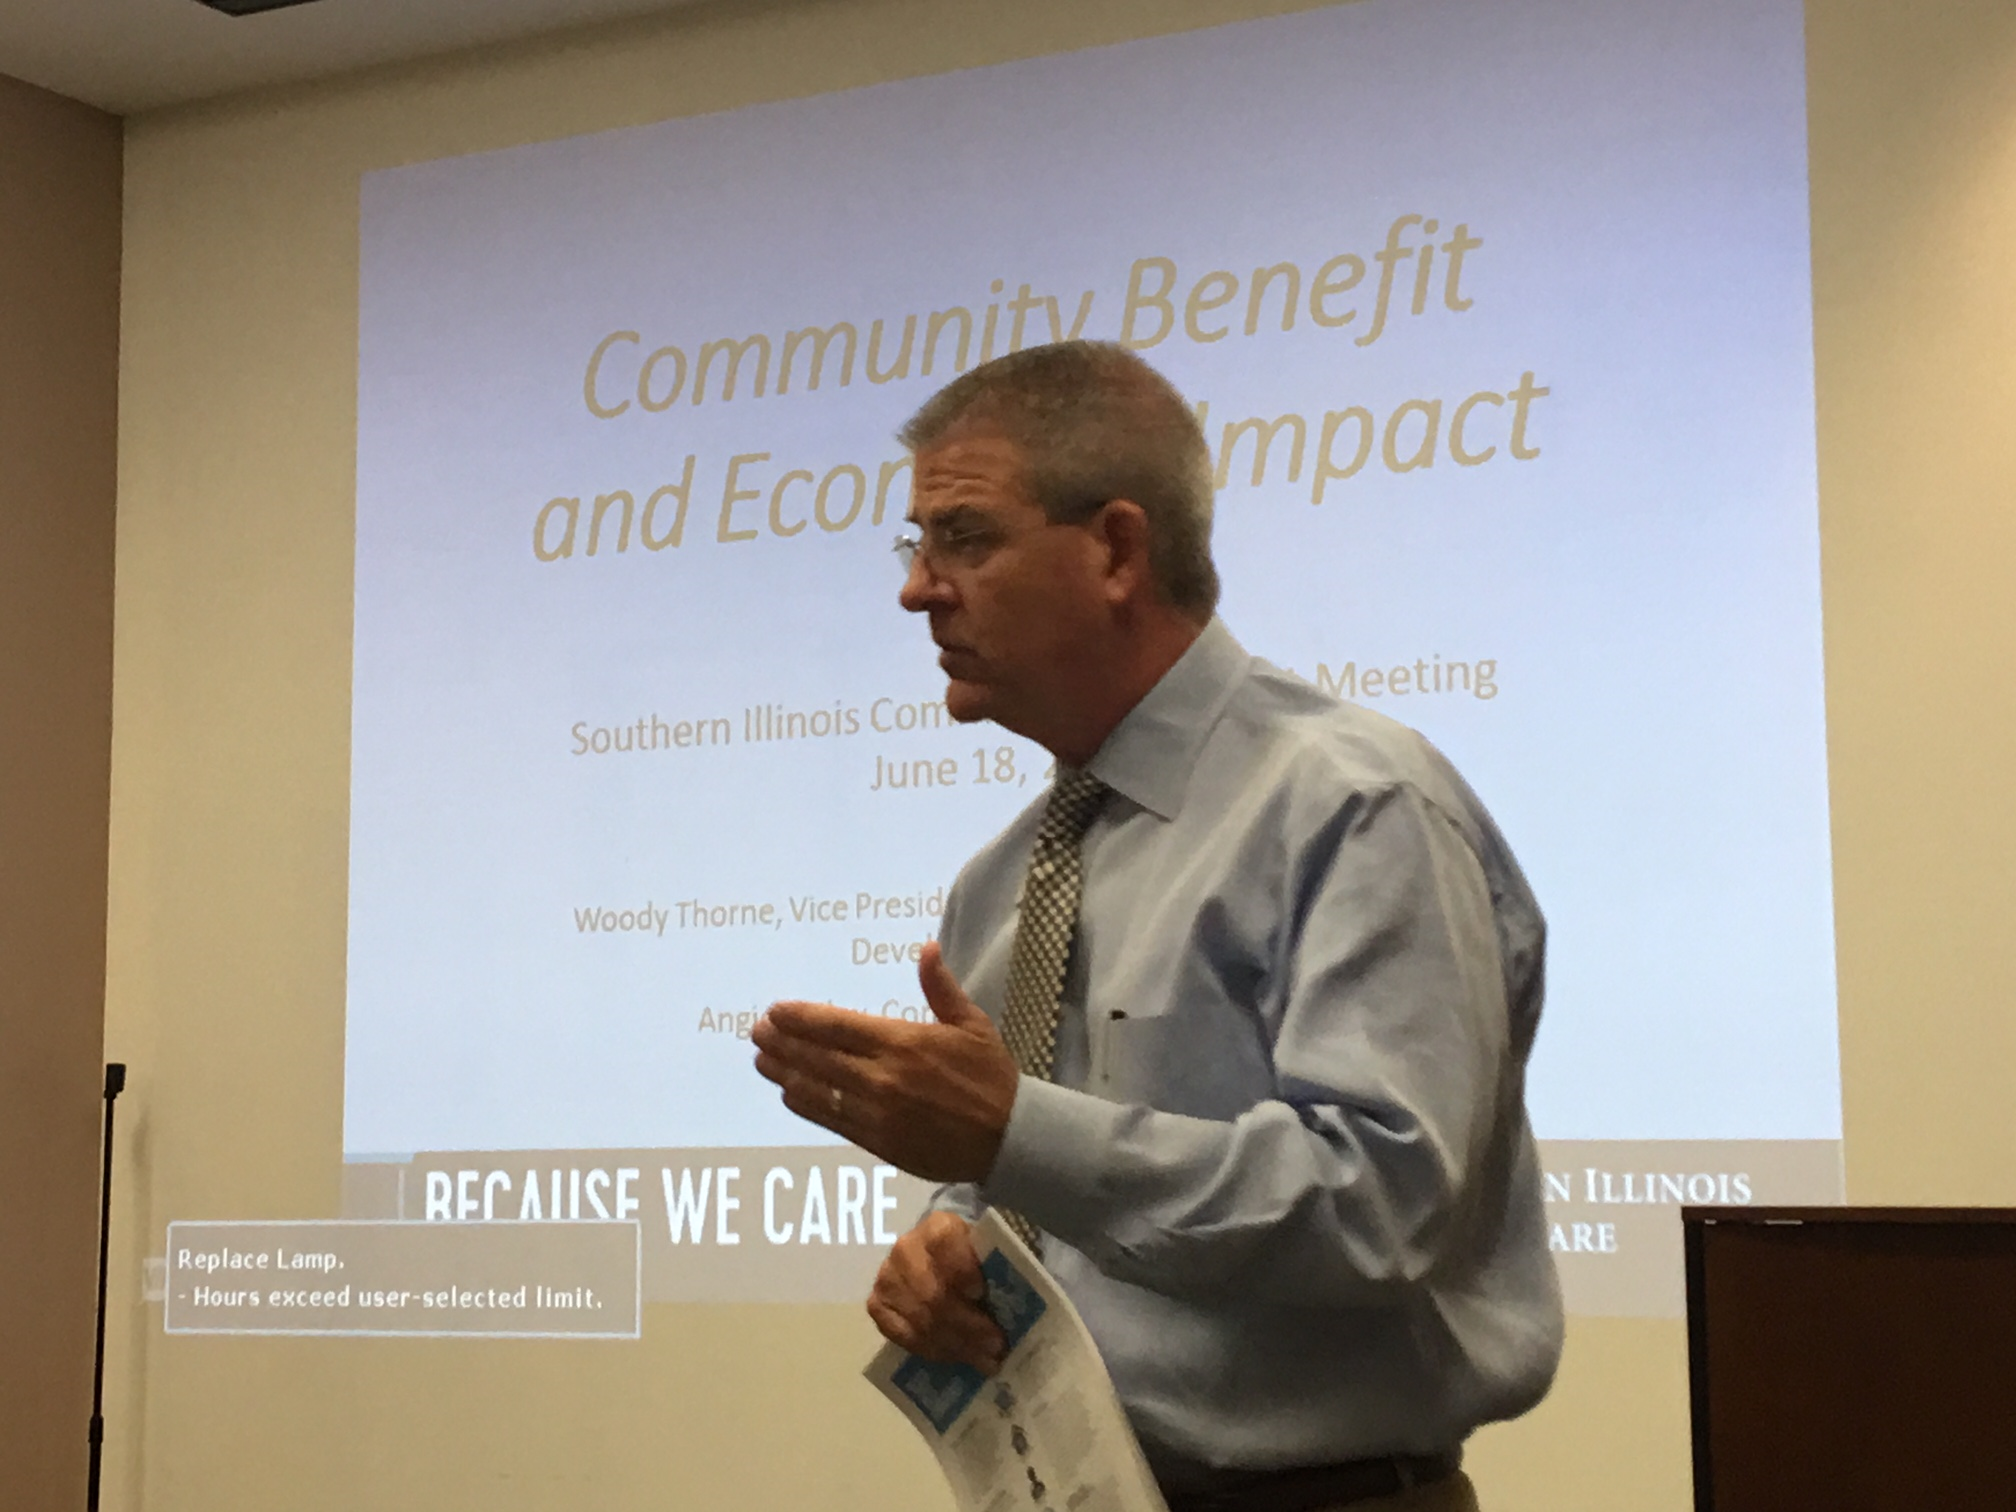 Woody Thorne - Southern Illinois Healthcare - Community Benefits Program